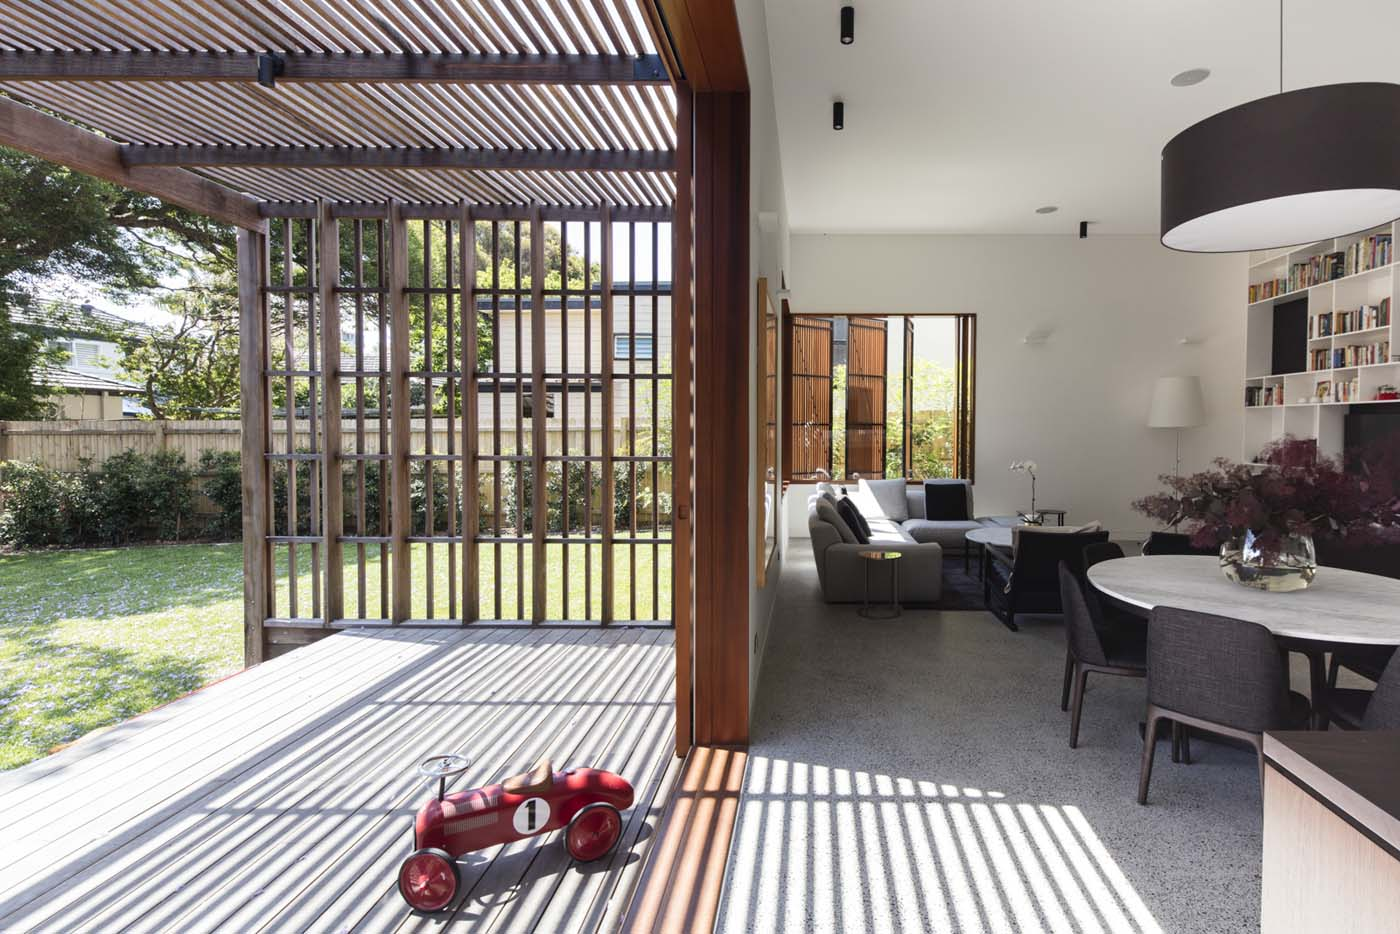 Sung Dobson house by Sam Crawford Architects, Sydney. Living area leading onto deck.